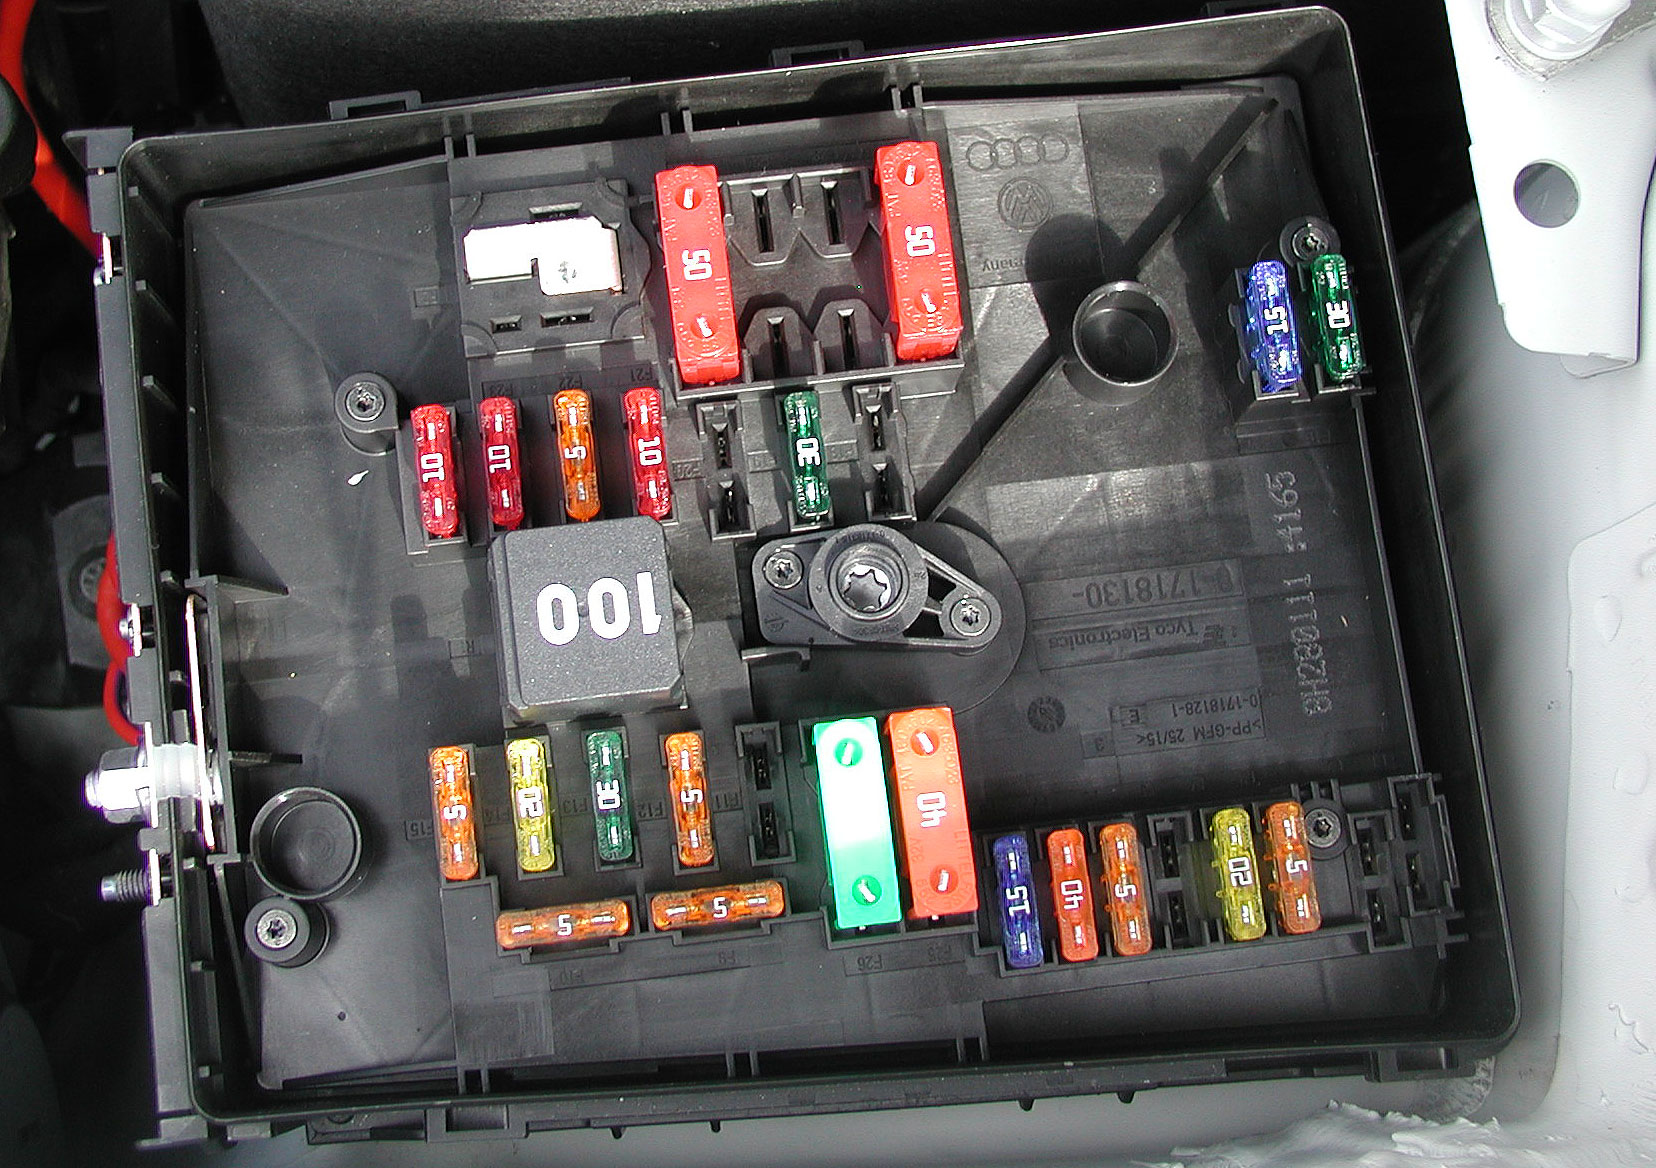 Vw Golf Fuse Box Wiring Diagram Data 2006 Camry 2011 Tdi Picture Please Tdiclub Forums 2012 Volkswagen Jetta